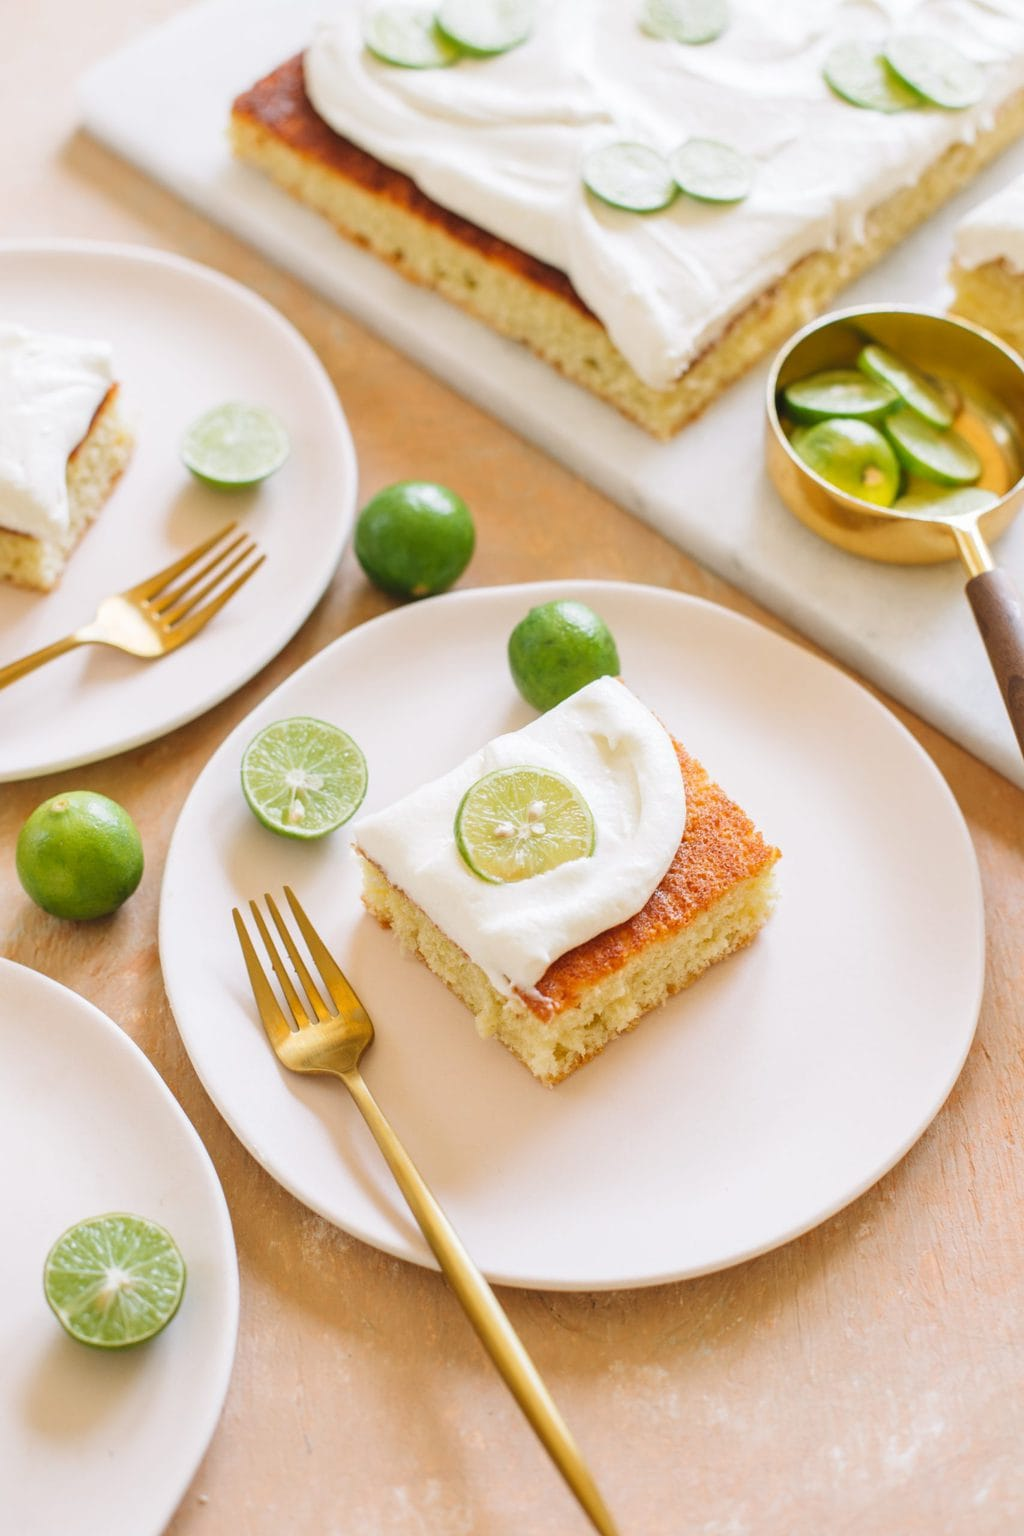 A piece of key lime cake served on a small pink plate with a gold fork.